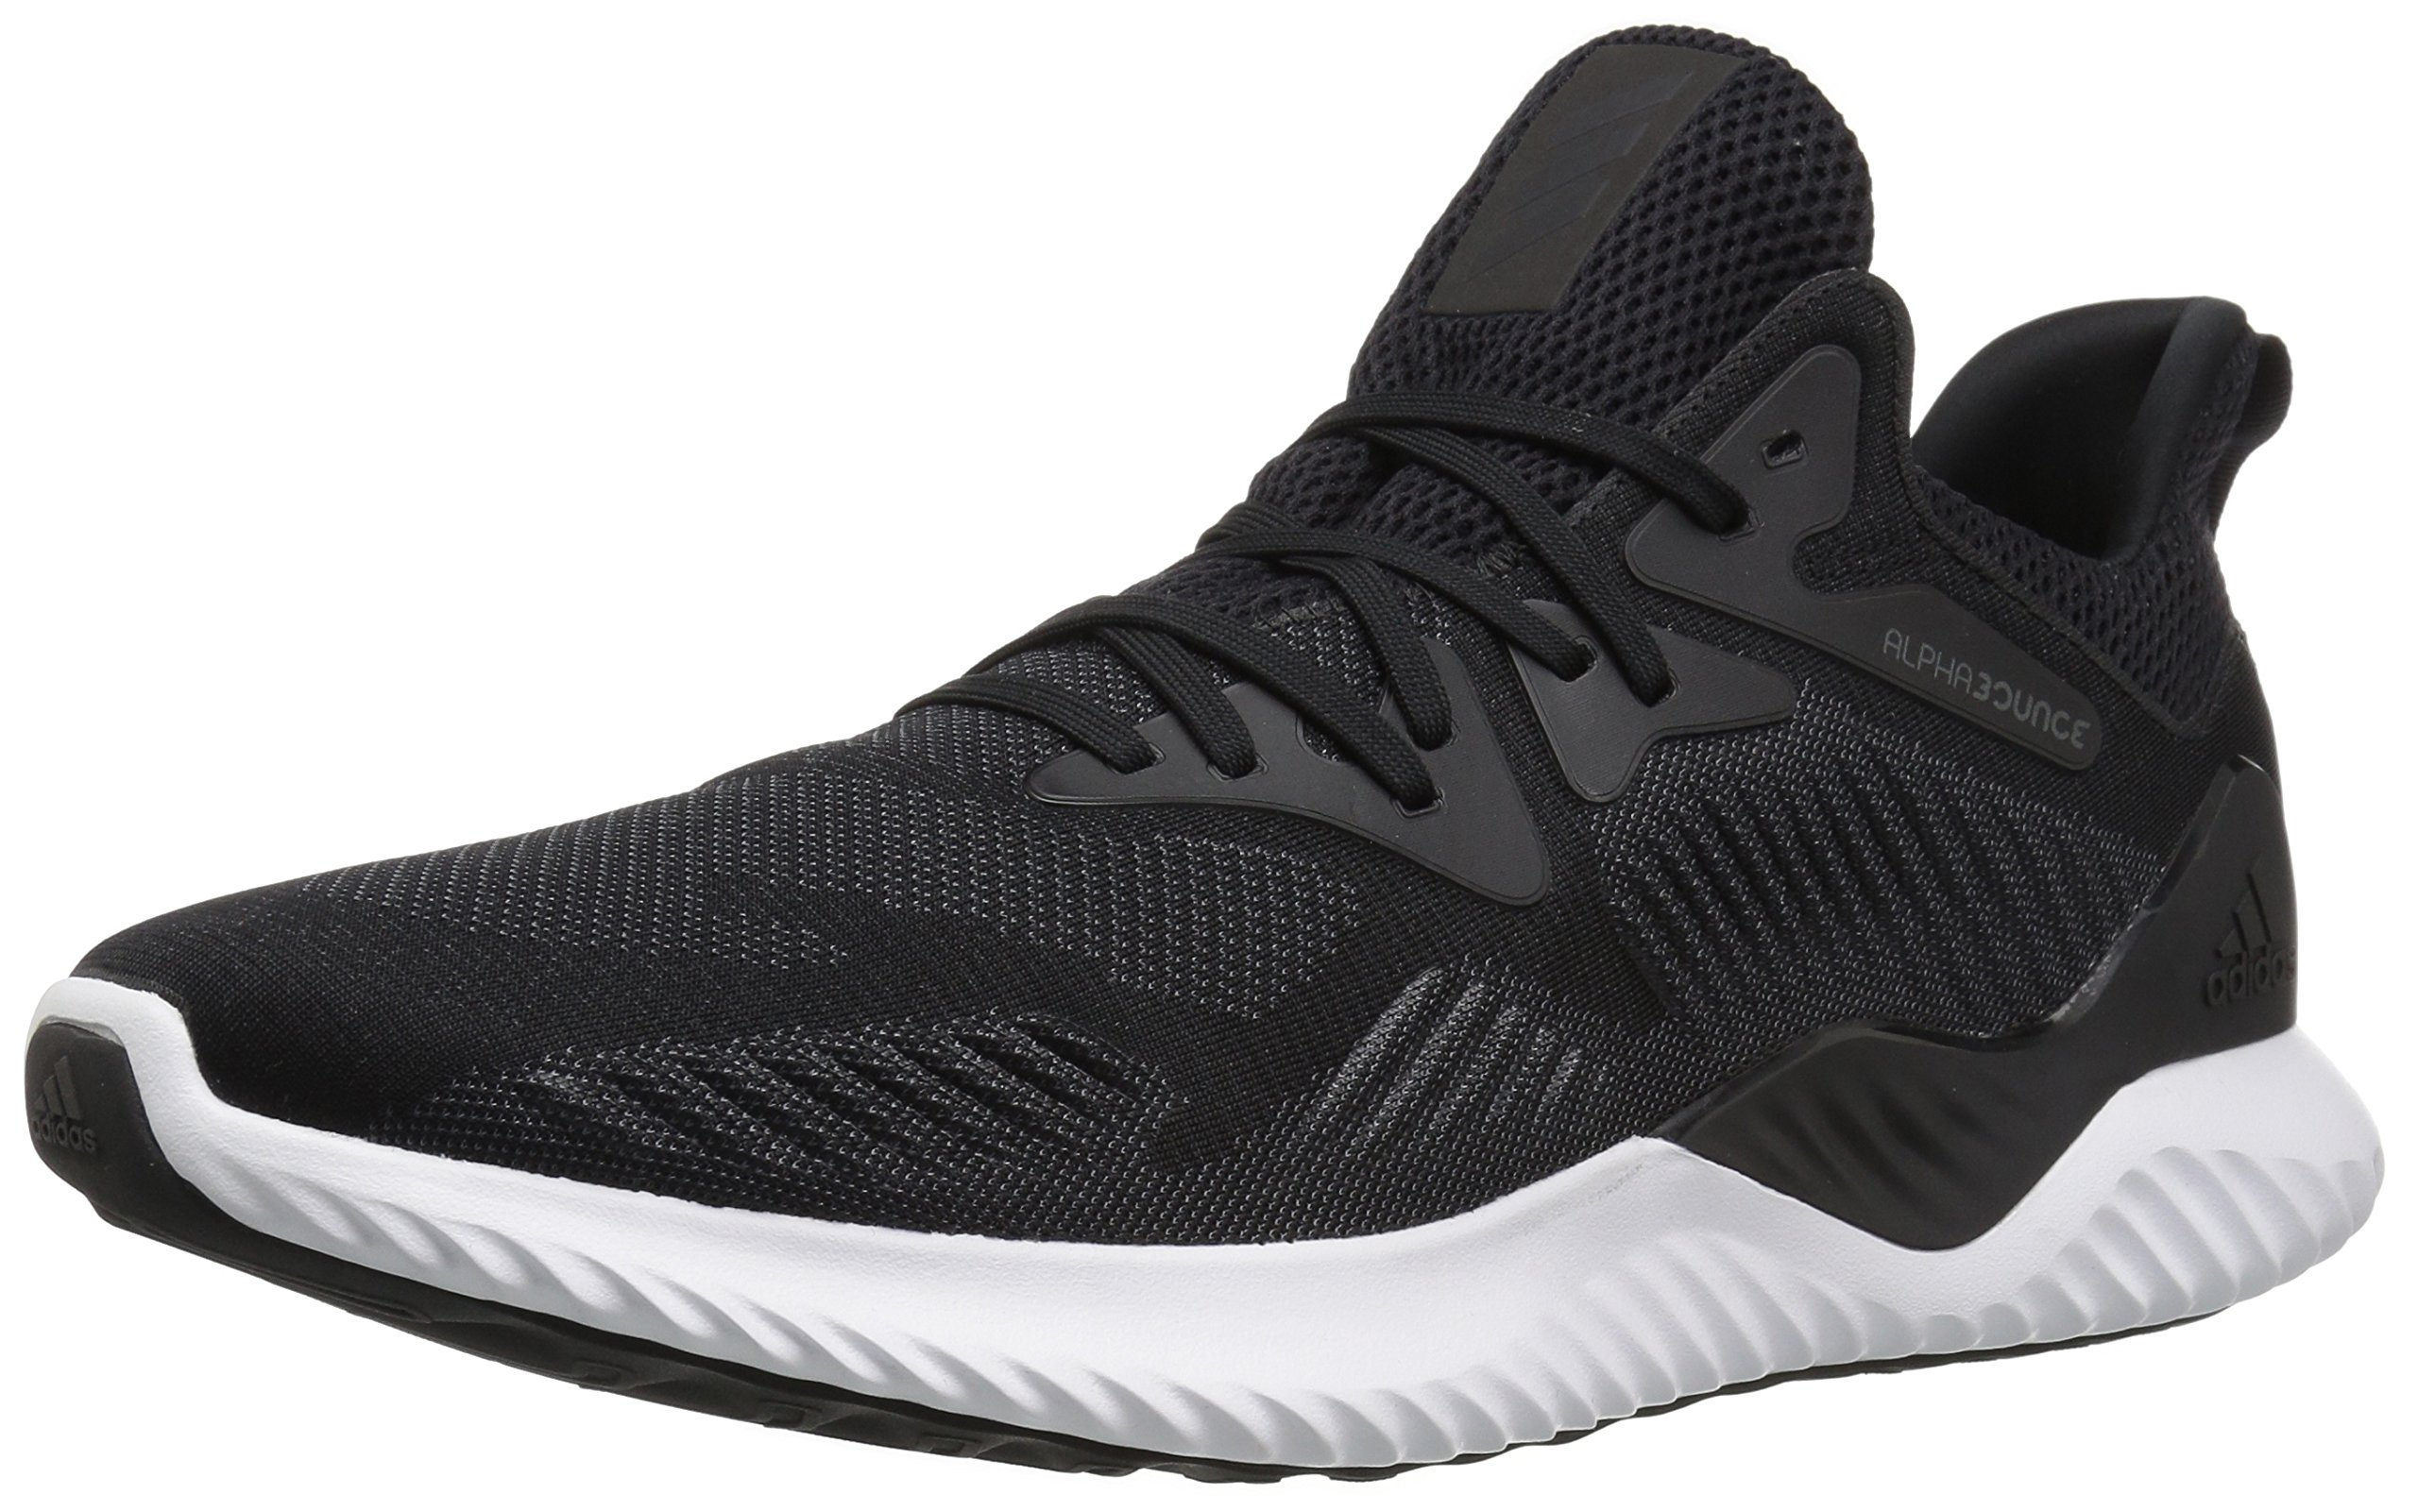 df6c4351e884b Galleon - Adidas Performance Alphabounce Beyond M